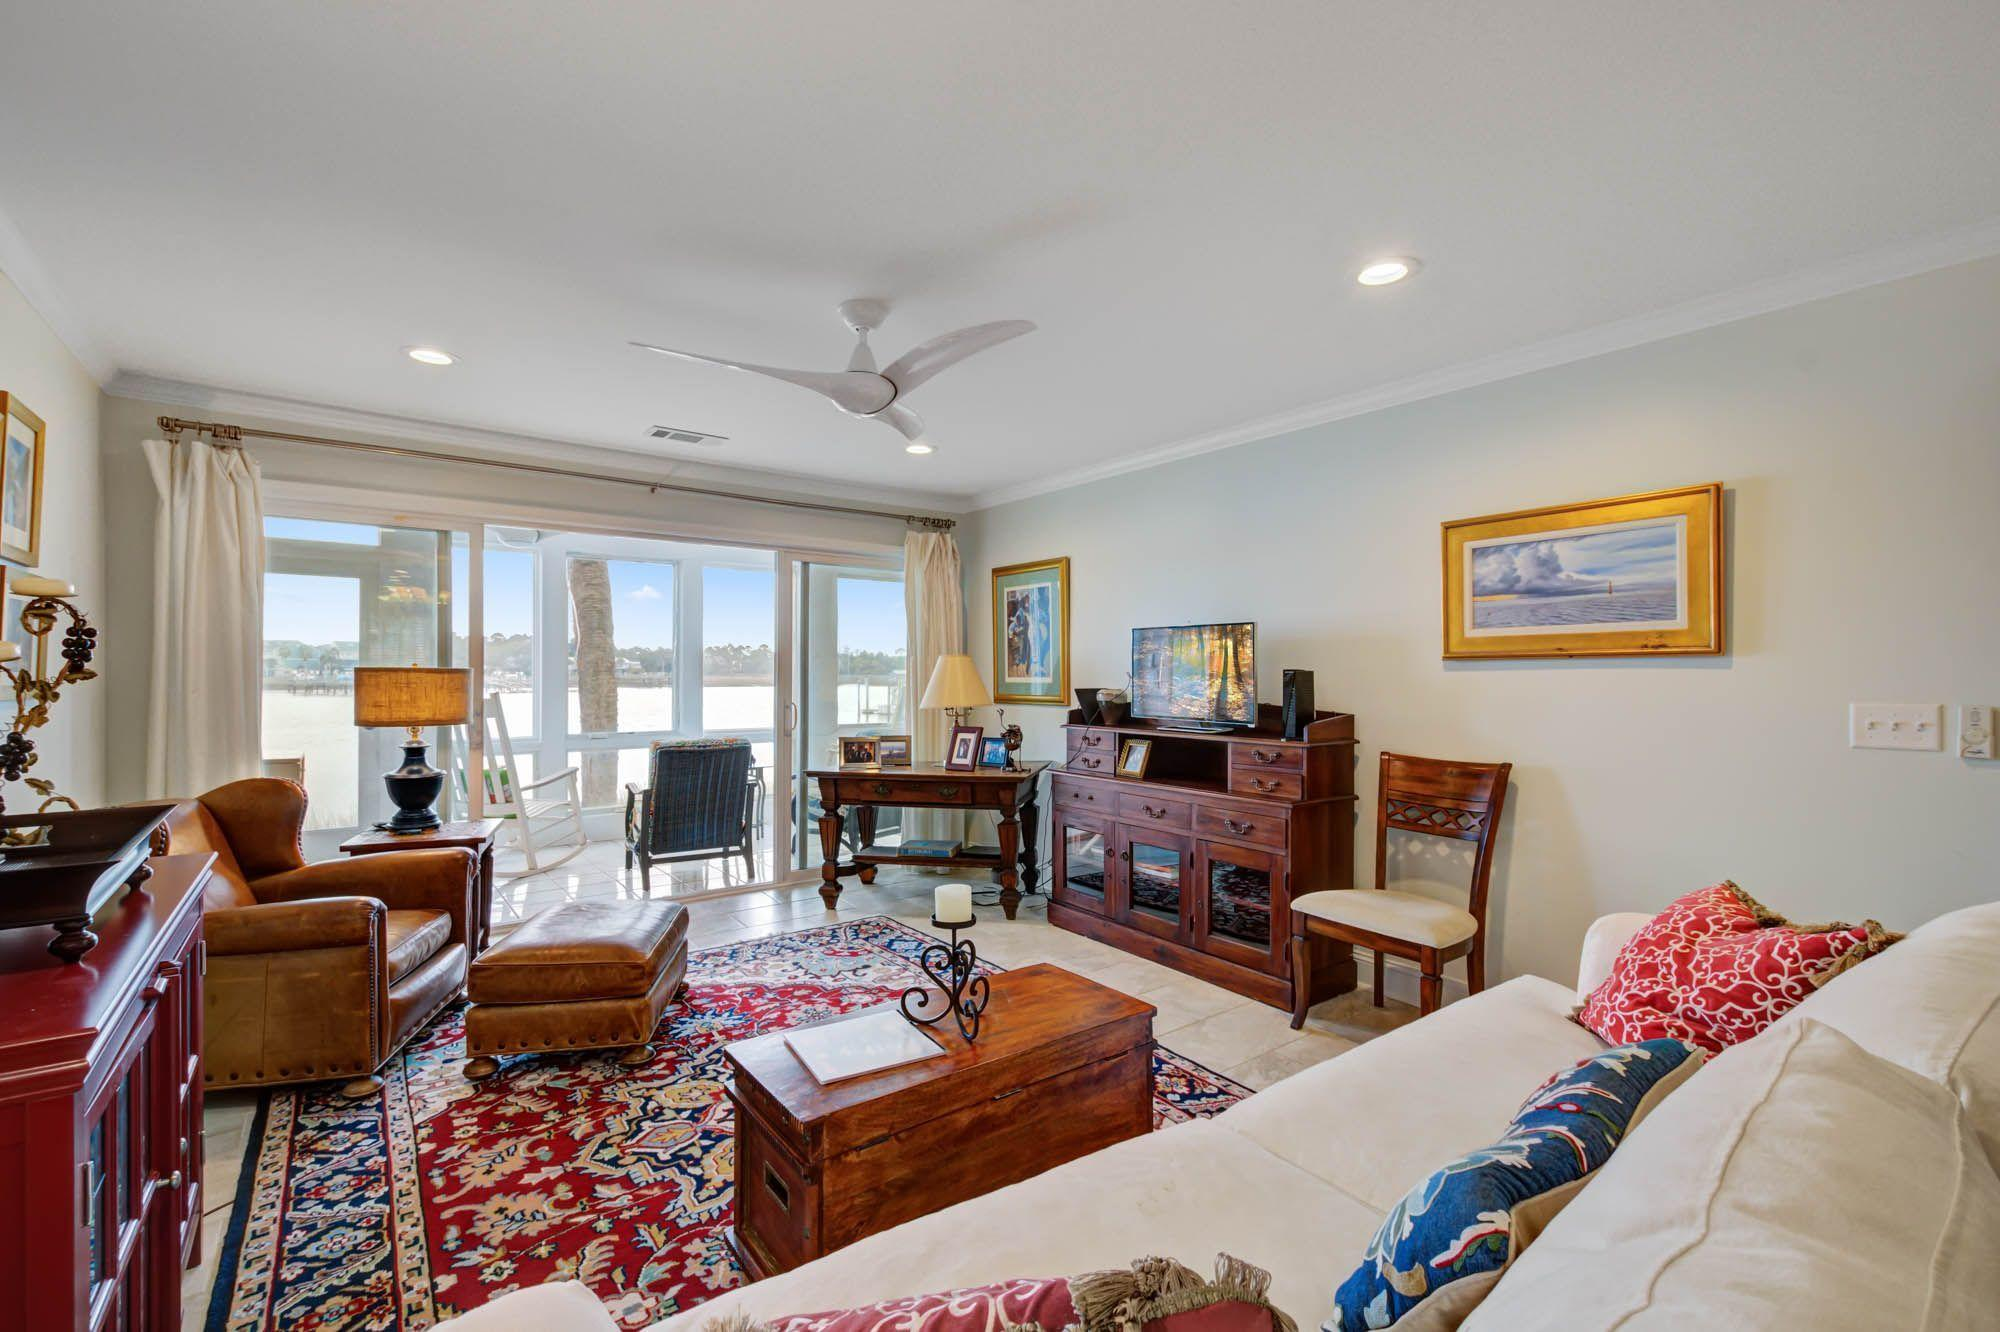 Mariners Cay Homes For Sale - 43 Mariners Cay, Folly Beach, SC - 26